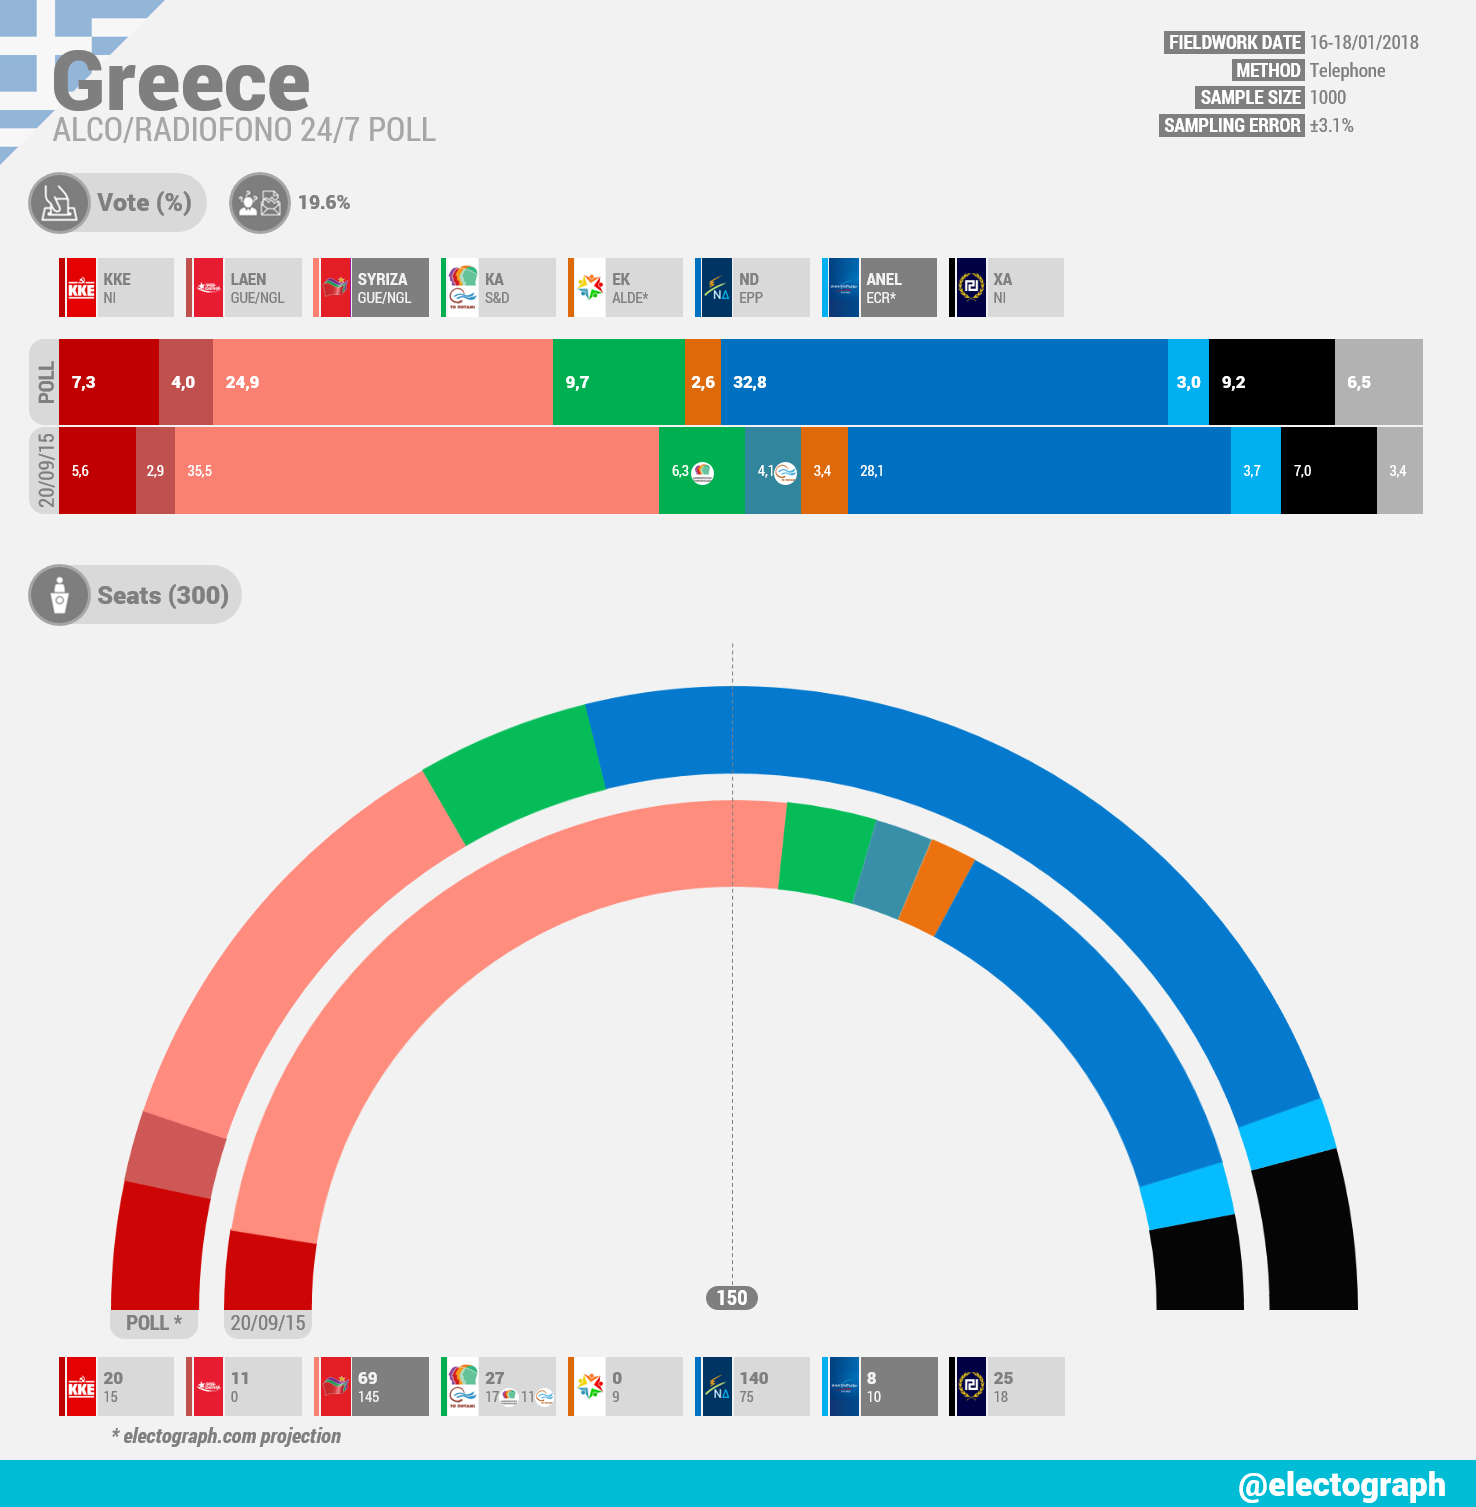 GREECE Alco poll chart for Radiofono 24/7, January 2018